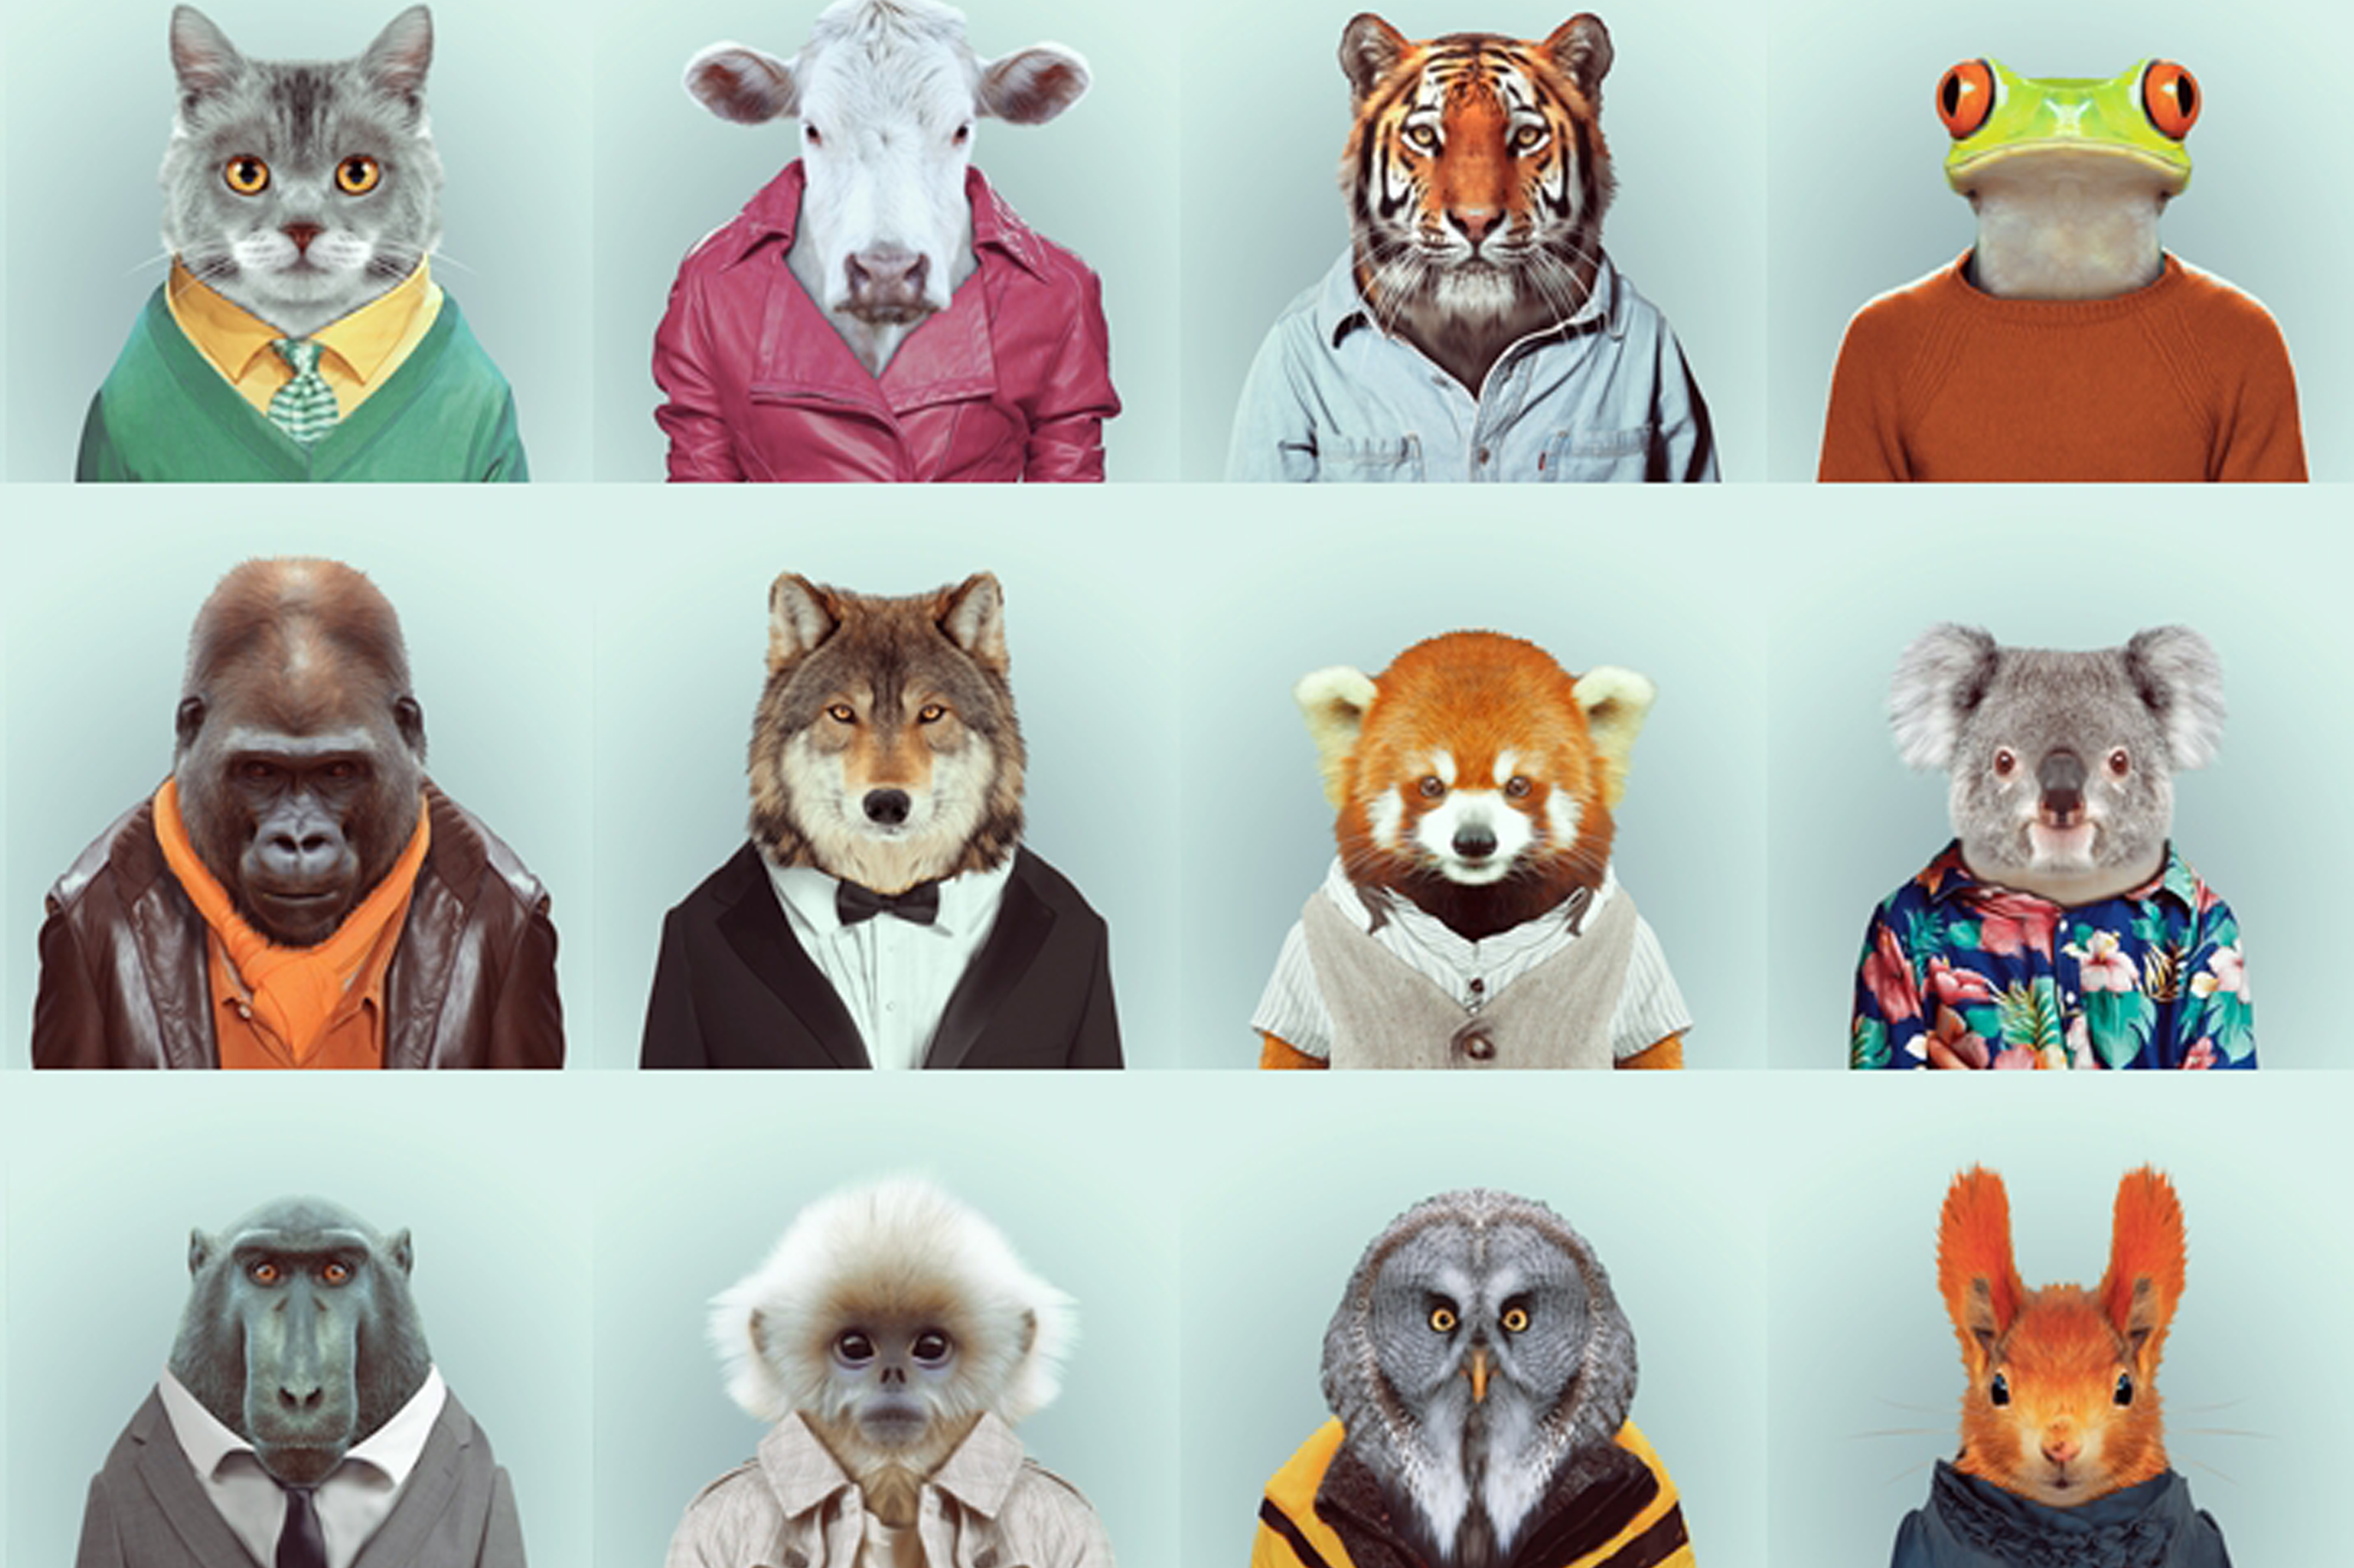 Zoo Animal Portraits by Yago Partal 9